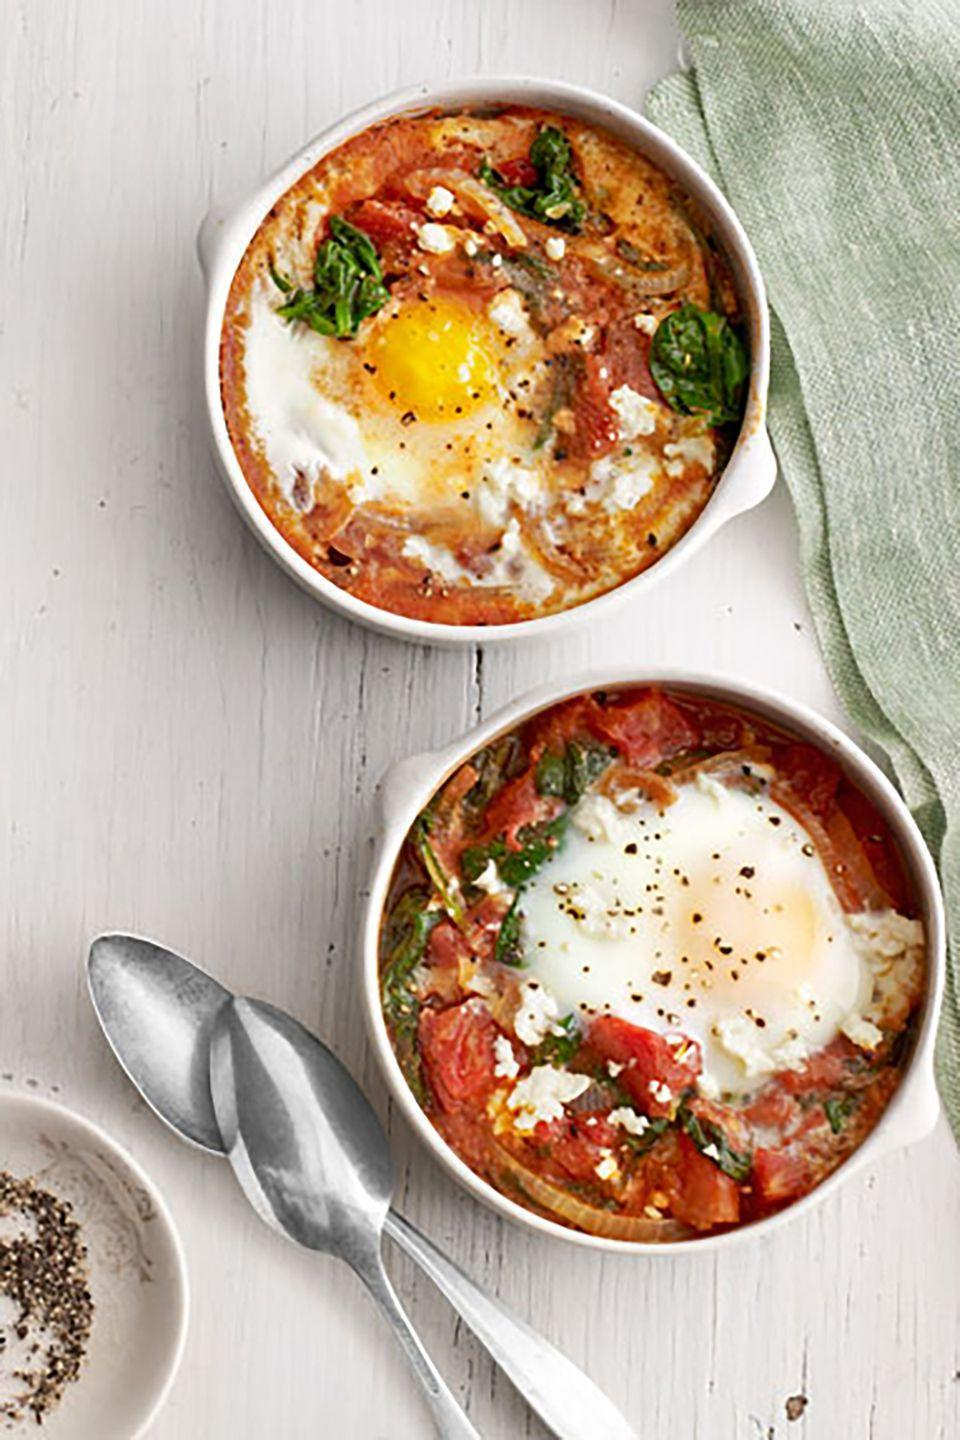 """<p>This easy brunch dish is packed with flavor and nutrients, and guaranteed to please all. </p><p><strong><a href=""""https://www.countryliving.com/food-drinks/recipes/a4148/baked-eggs-spinach-tomato-recipe-clv0313/"""" rel=""""nofollow noopener"""" target=""""_blank"""" data-ylk=""""slk:Get the recipe"""" class=""""link rapid-noclick-resp"""">Get the recipe</a>.</strong></p>"""